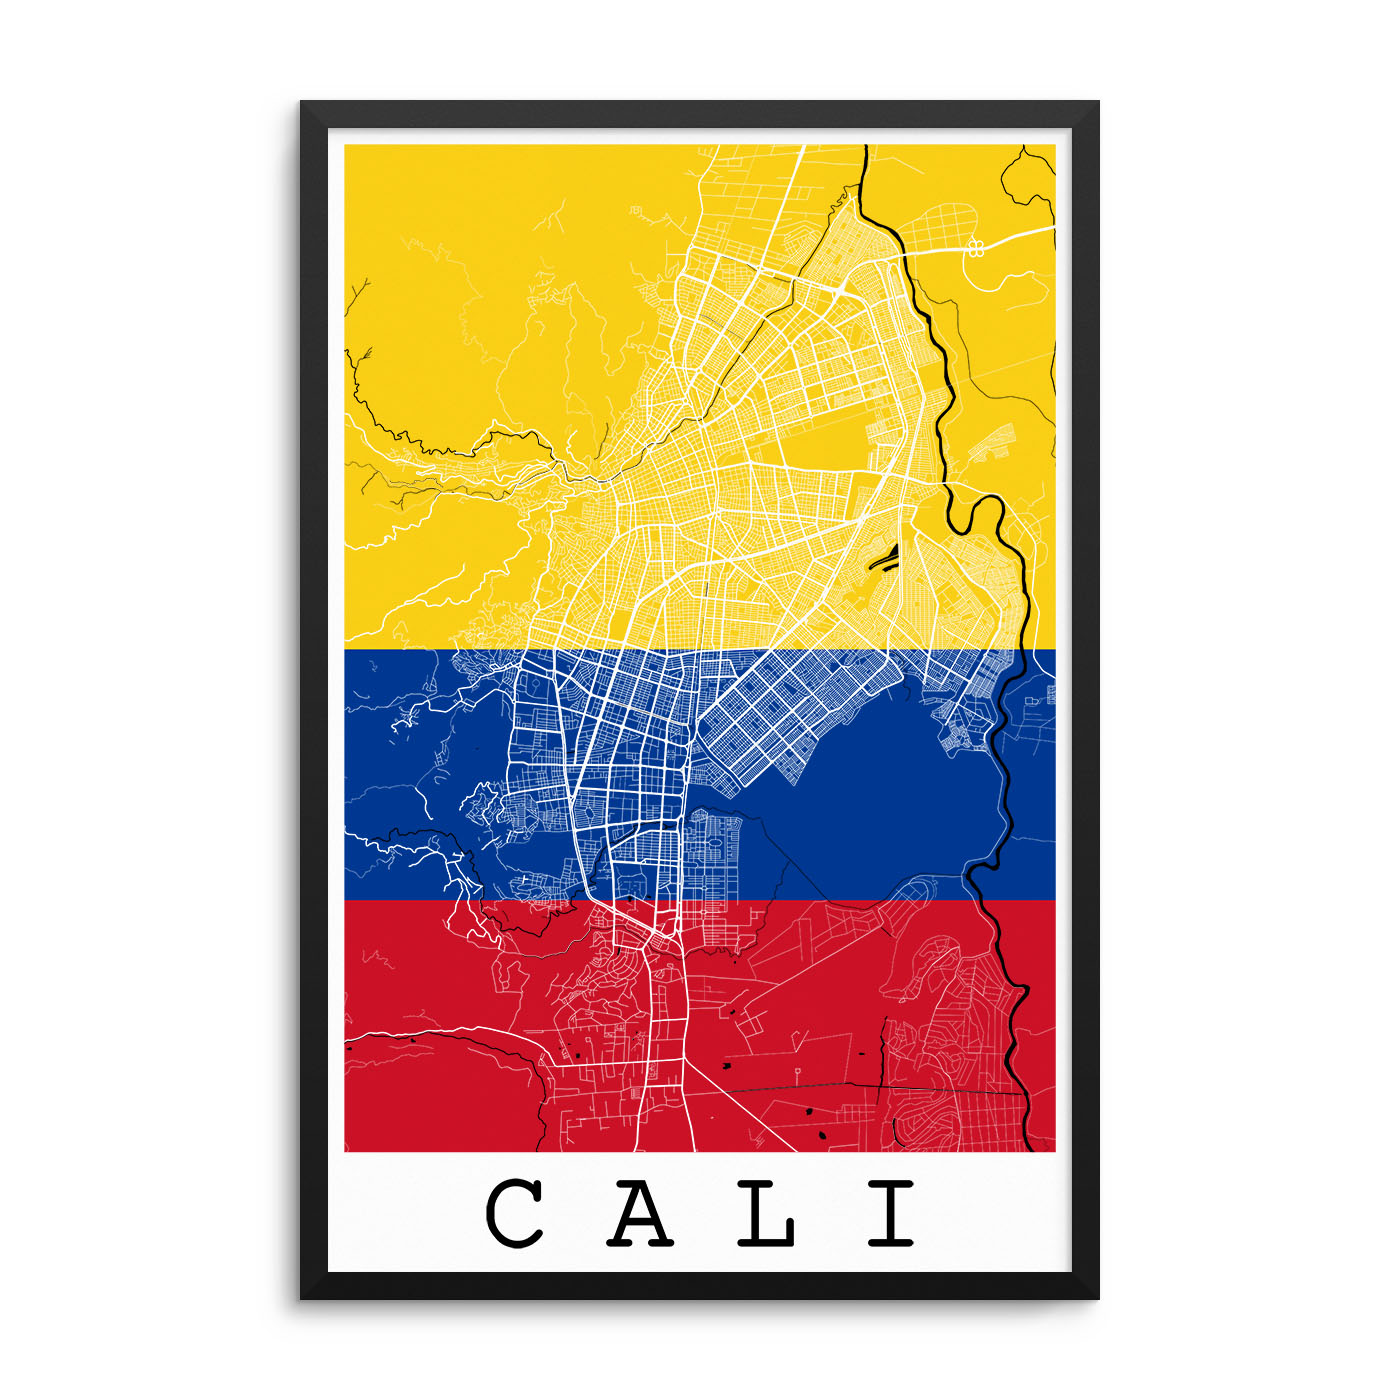 Cali Colombia Flag Map Poster – City Map Decor on